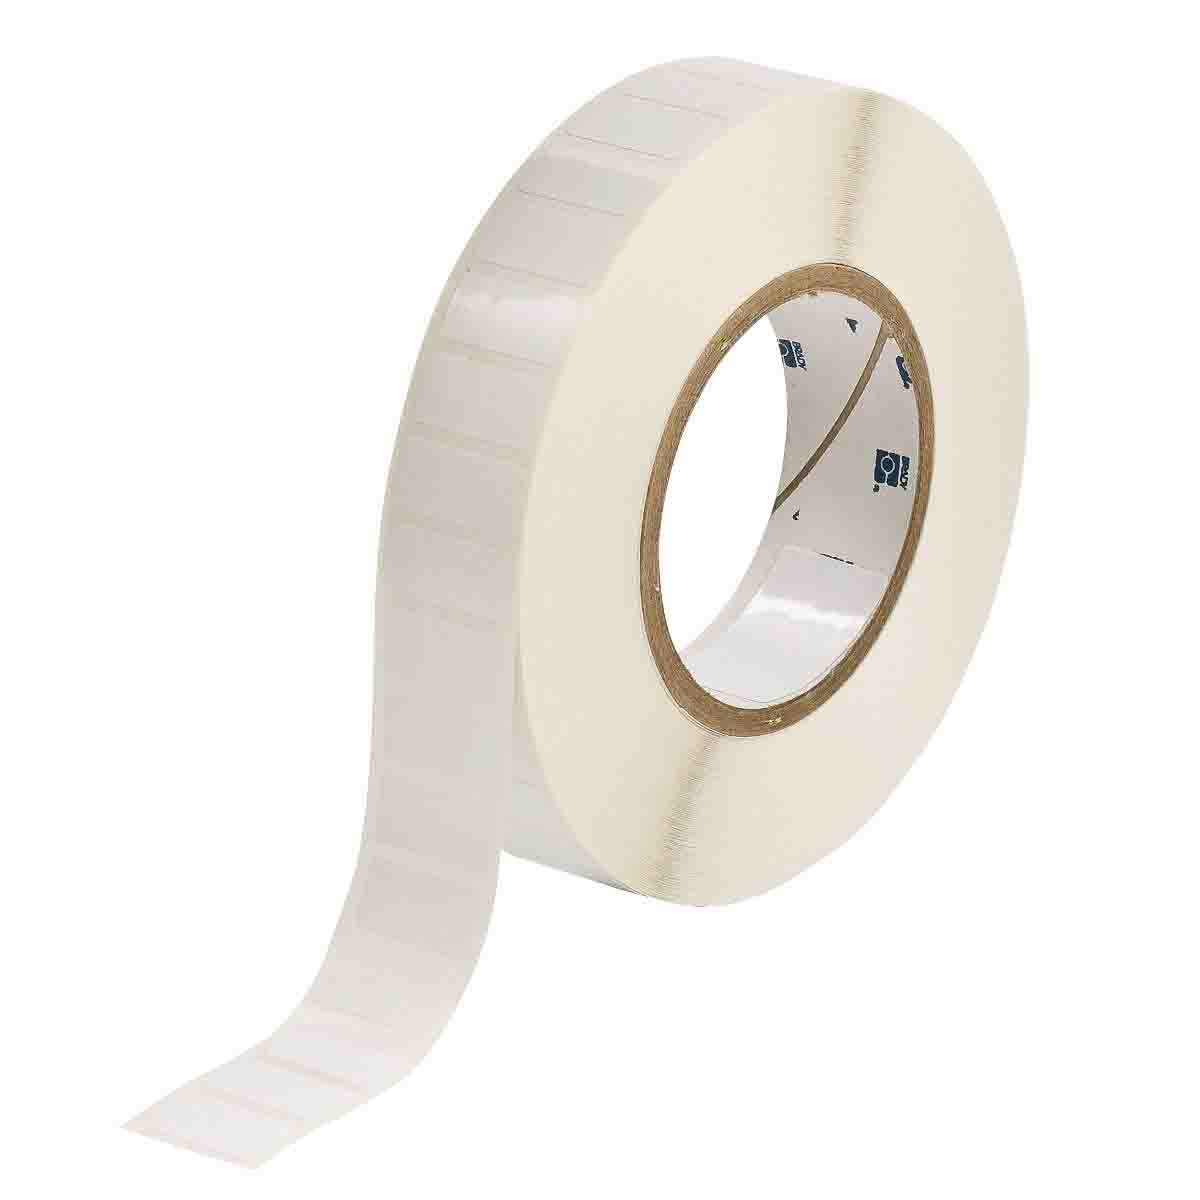 B-483 Ultra Aggressive Polyester Brady THT-55-483-1 4 Width x 2 Height 1000 per Roll Gloss Finish White Thermal Transfer Printable Label